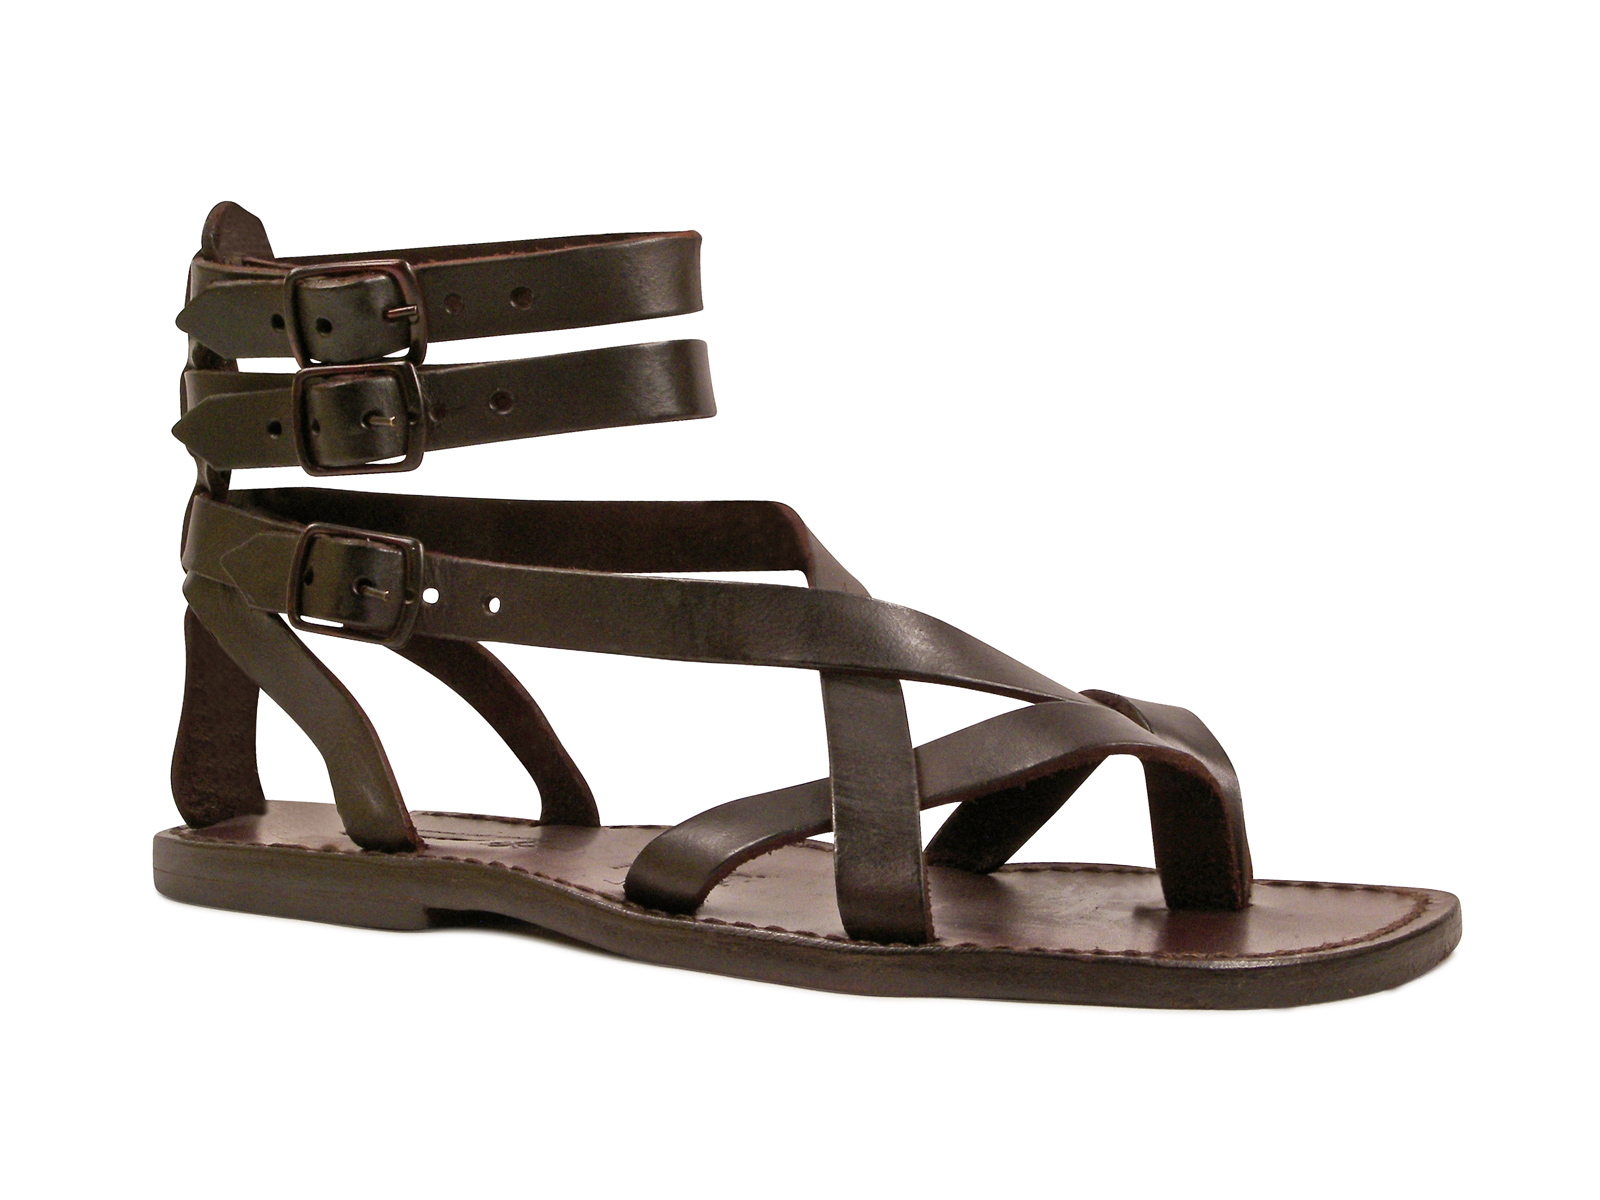 Handmade Gladiator Sandals For Men Made In Italy In Brown